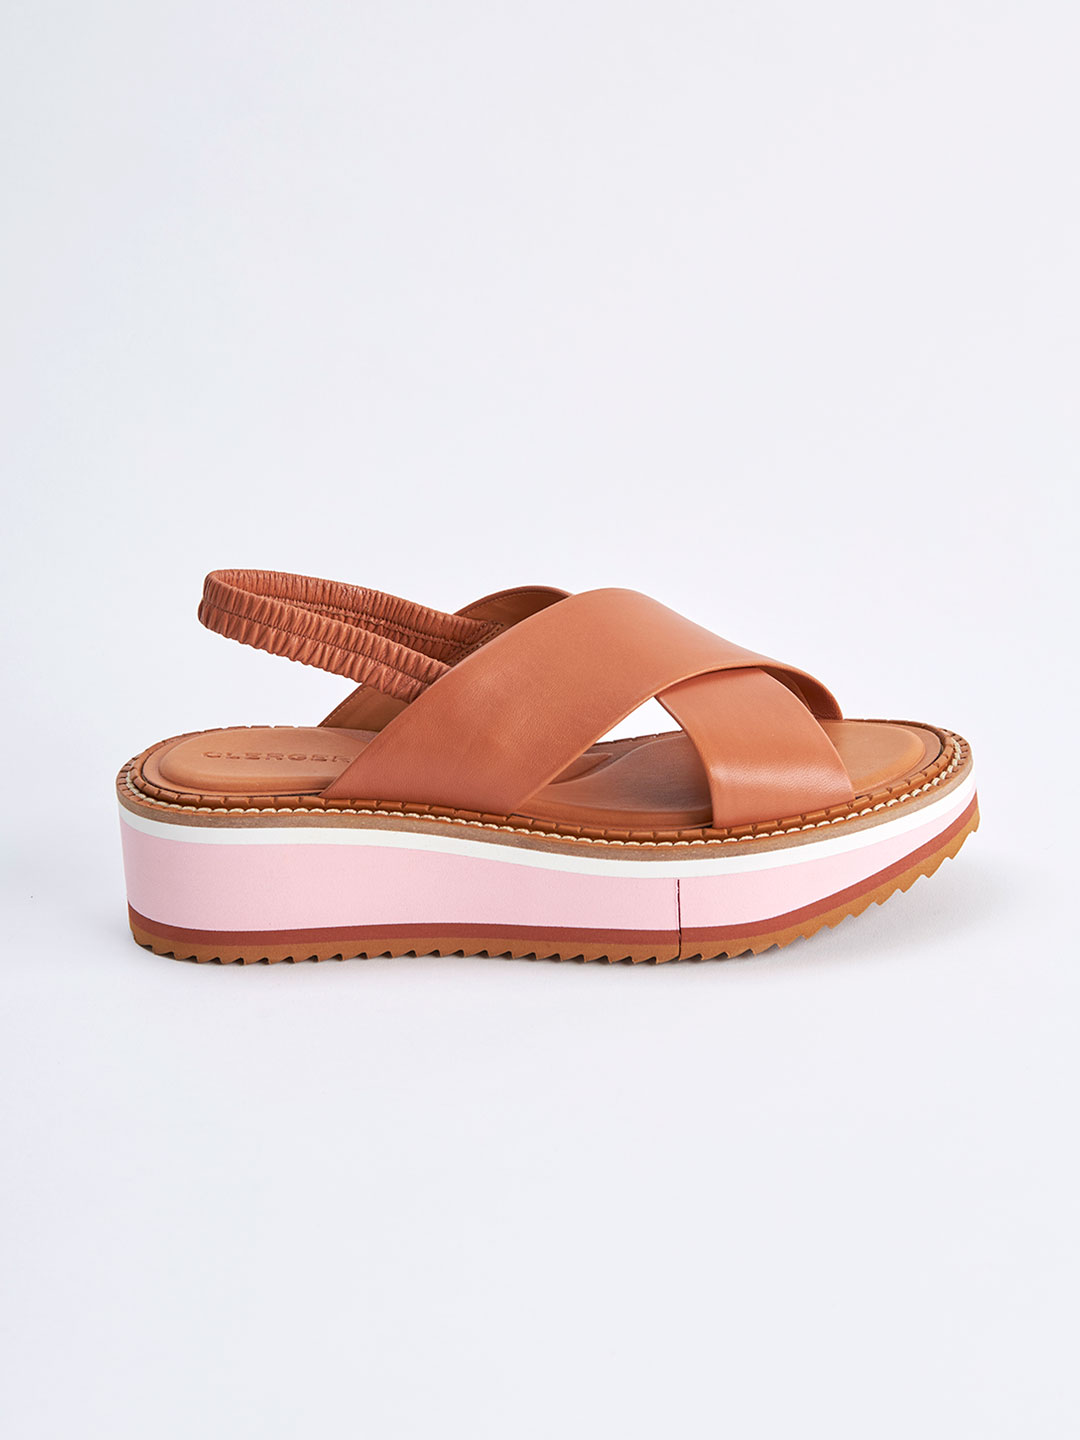 FREEDOM3 Cross Strap Sandals - Brown